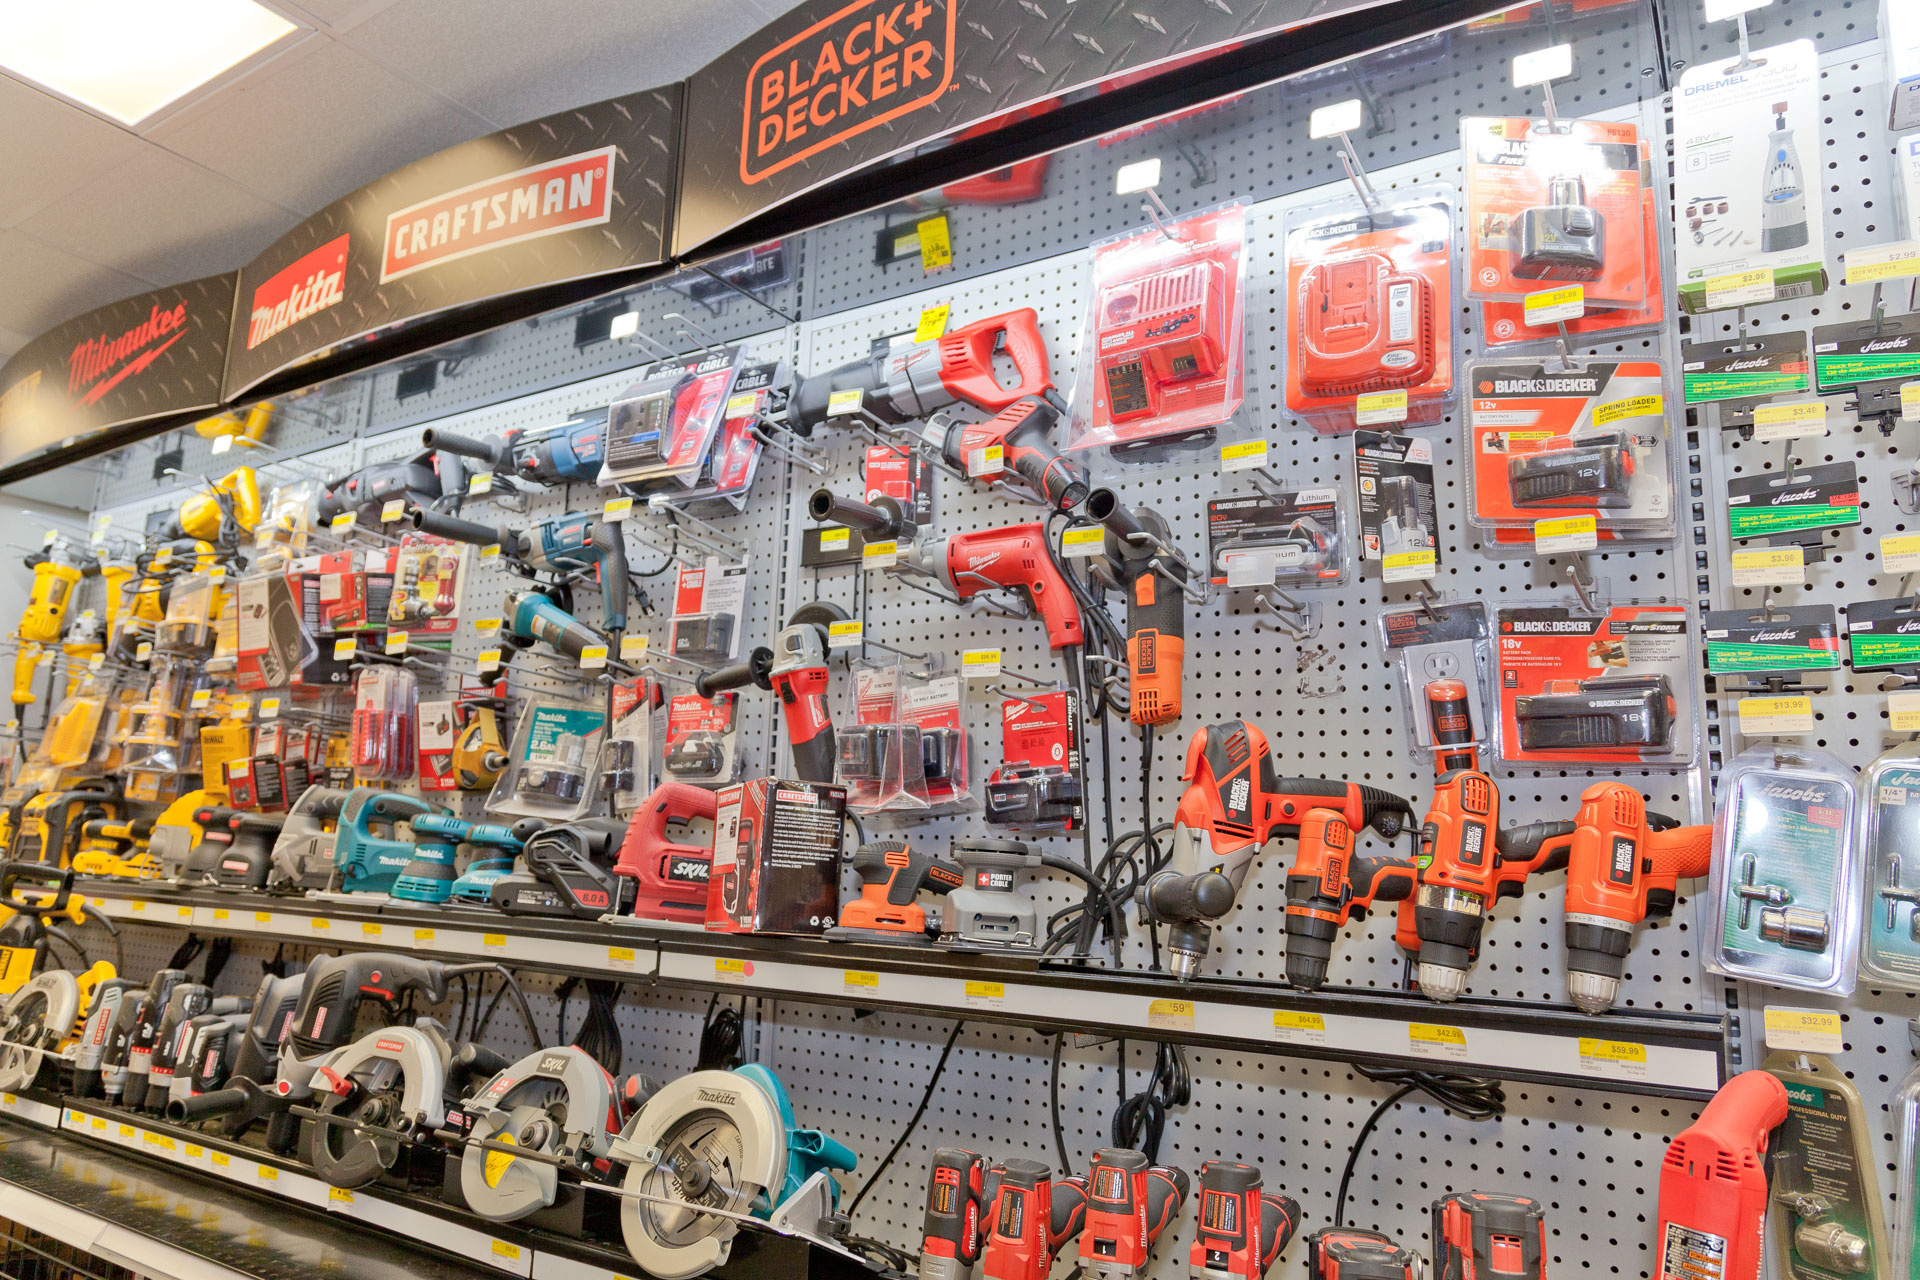 Local Hardware with Equipment-$400K inventory included